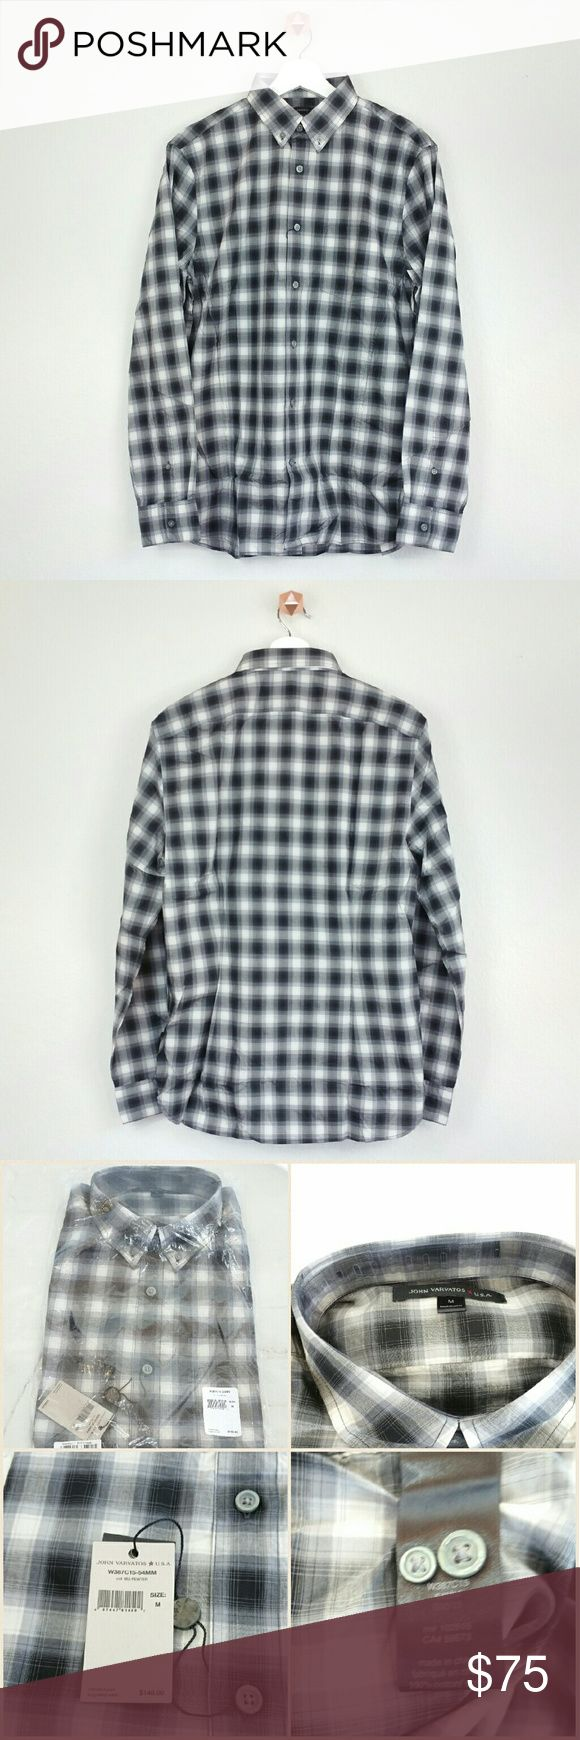 JOHN VARVATOS STAR USA checkered sportshirt Button-down collar. Button closure. Long sleeve. Checkered-plaid print throughout. Chest patch pocket.  Rolled tab sleeve. Barrel cuffs w/ double button closures. Curved hem. Tonal top stitching & panel seaming.  Fabric: 100% cotton.  Size: M Collor: dark grey-light grey-white plaid checkered.  NWT. Never worn. Can provide more pictures and info upon request. Reasonable offer only please :) John Varvatos Shirts Casual Button Down Shirts